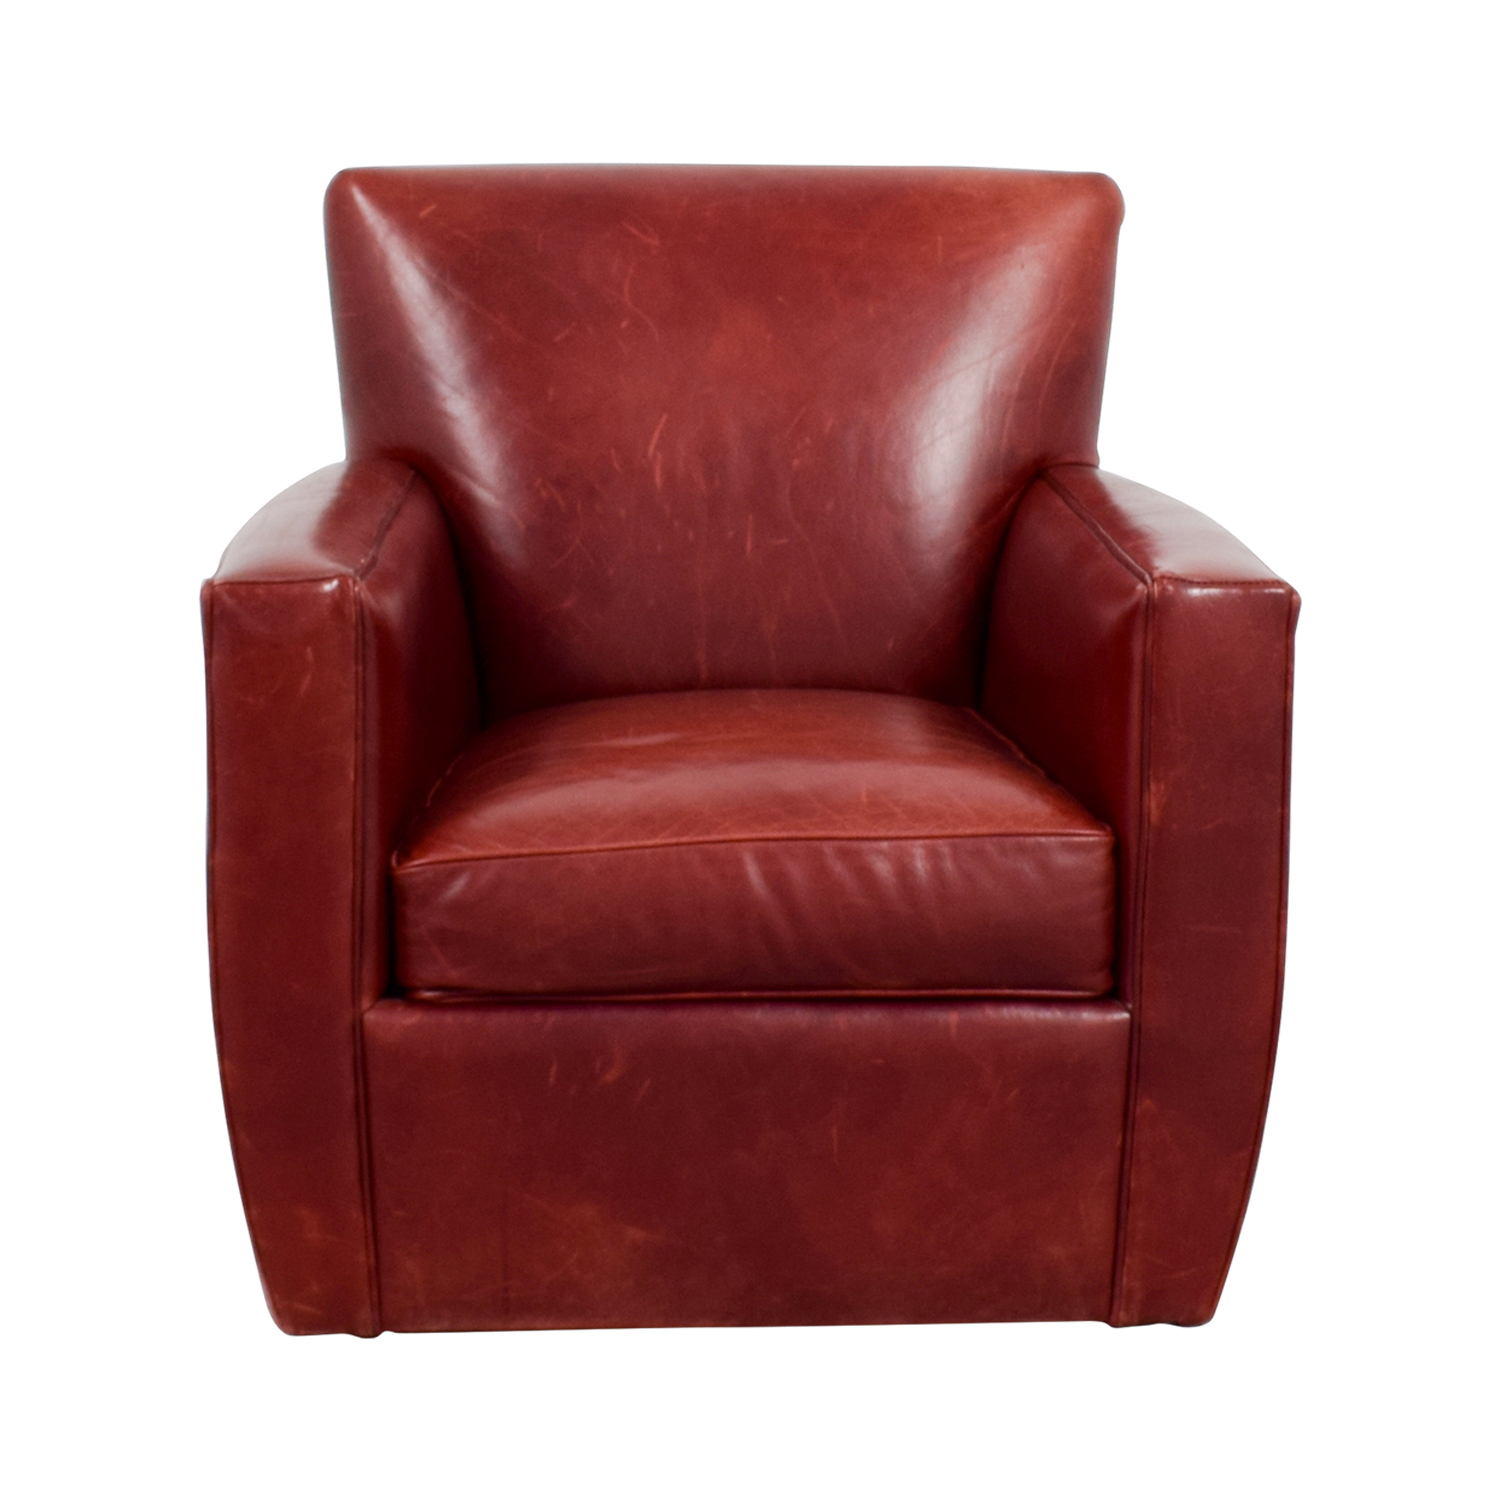 79 Off Crate Barrel Crate Barrel Leather Swivel Chair Chairs